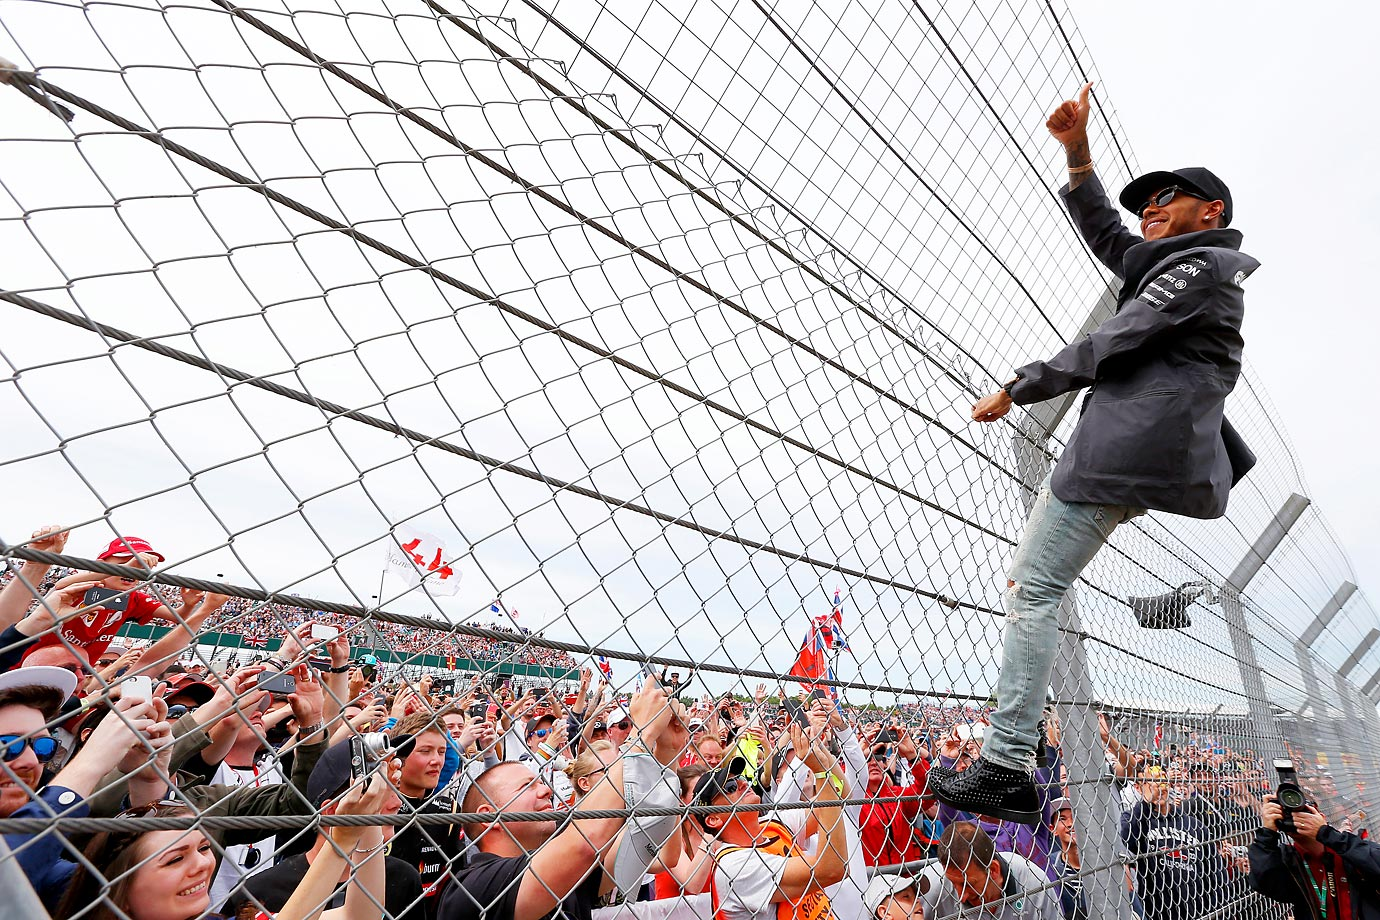 Lewis Hamilton climbs the fence before the Formula One Grand Prix of Great Britain.